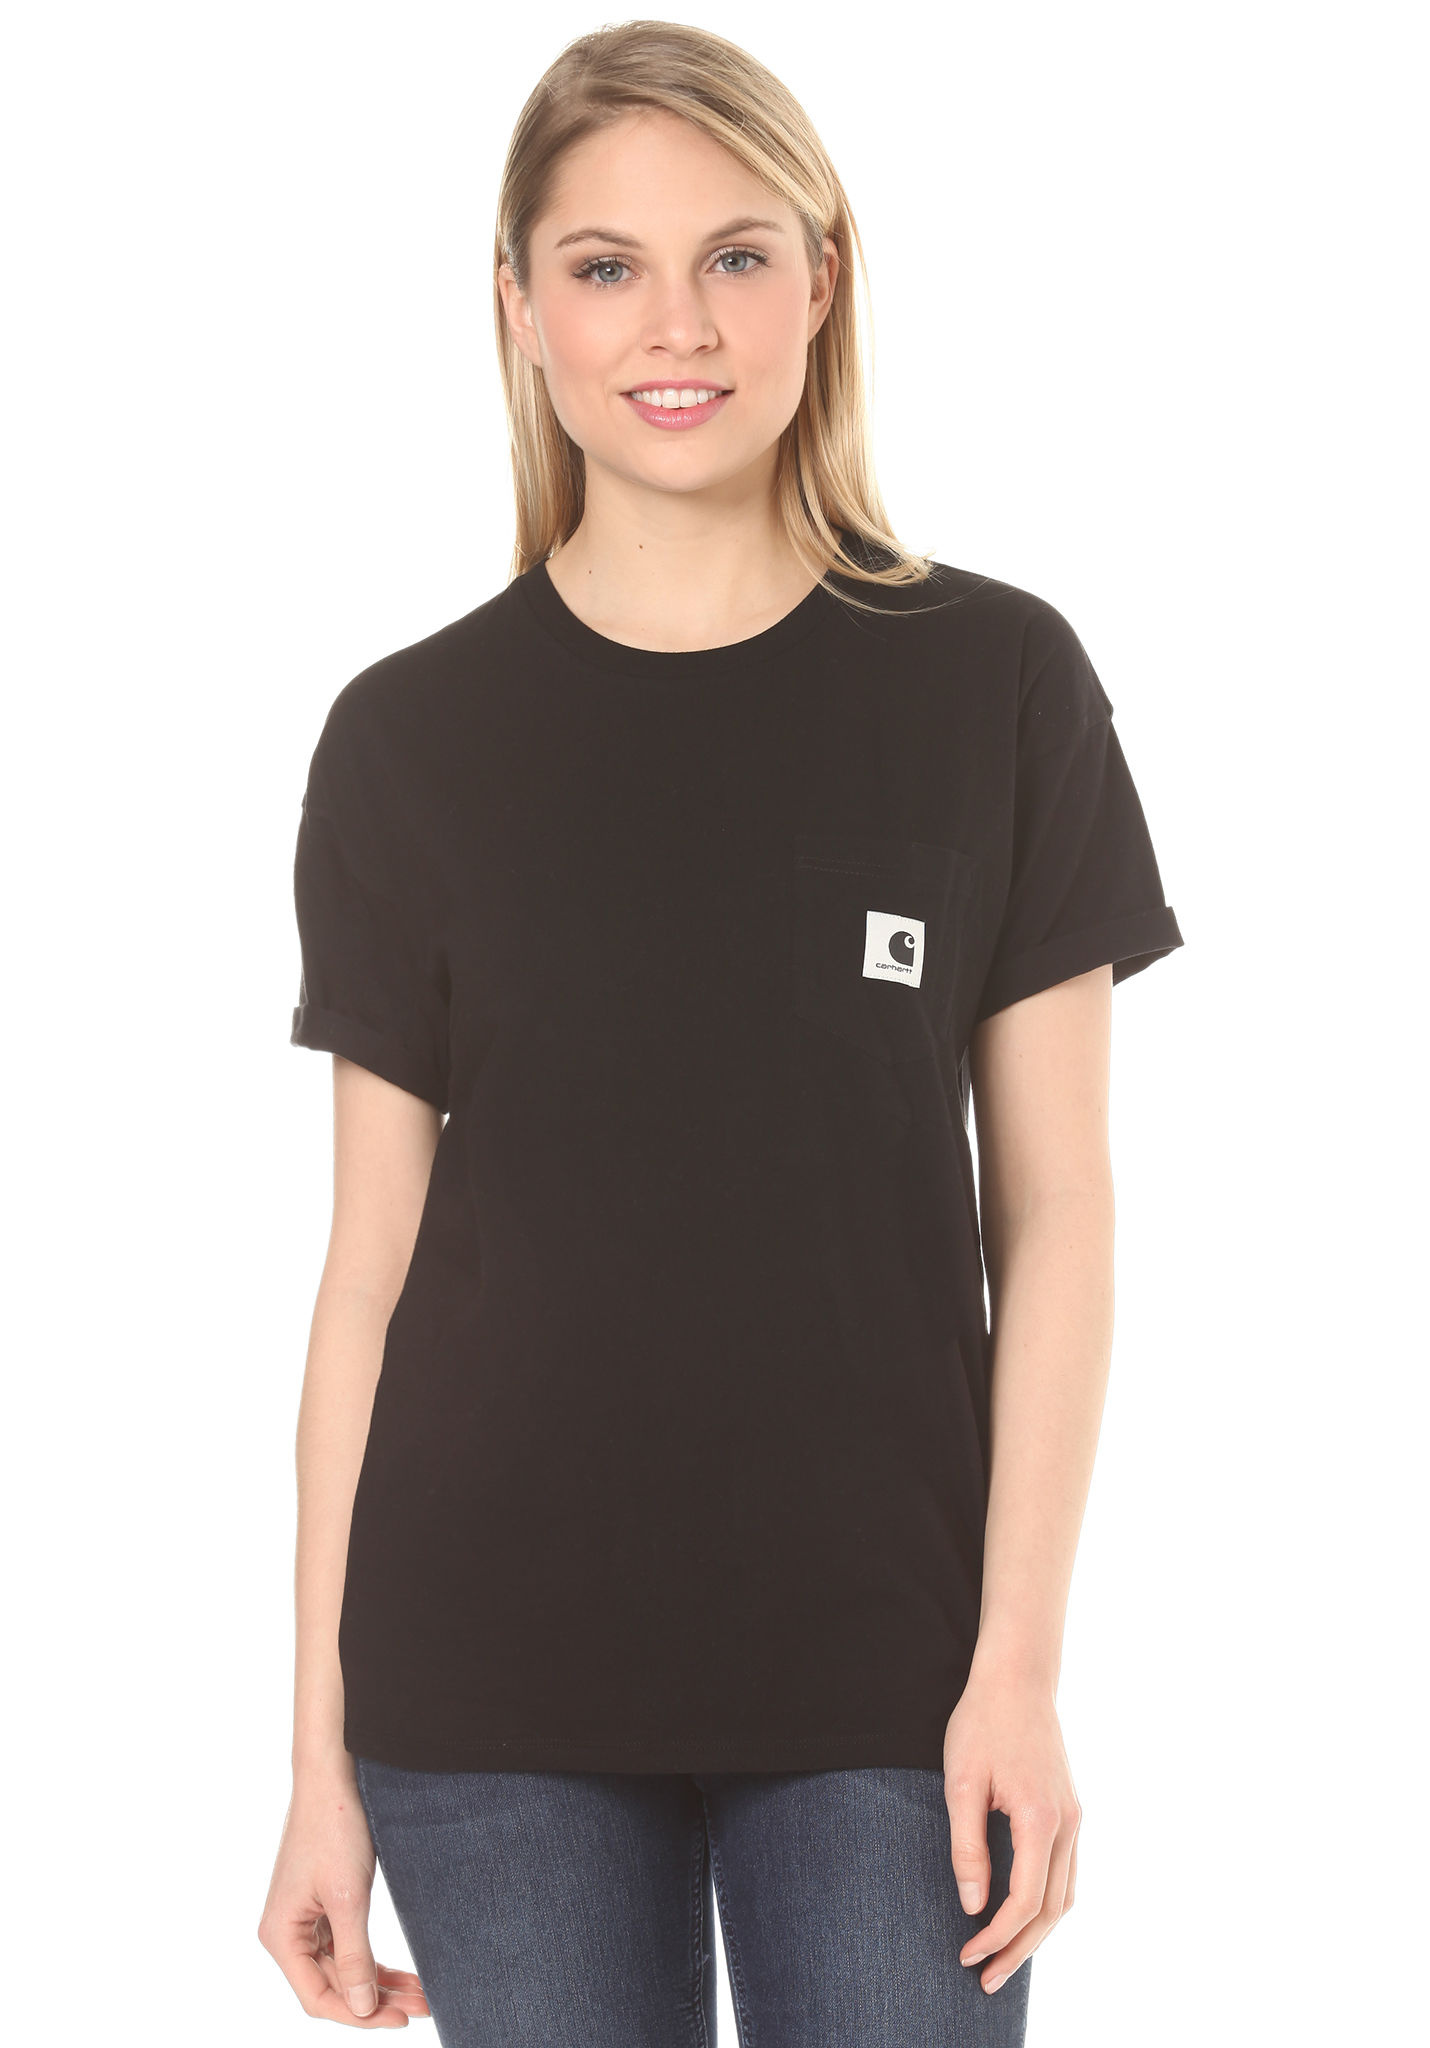 carhartt WIP Carrie Pocket - T-Shirt for Women - Black - Planet Sports 860860fc7